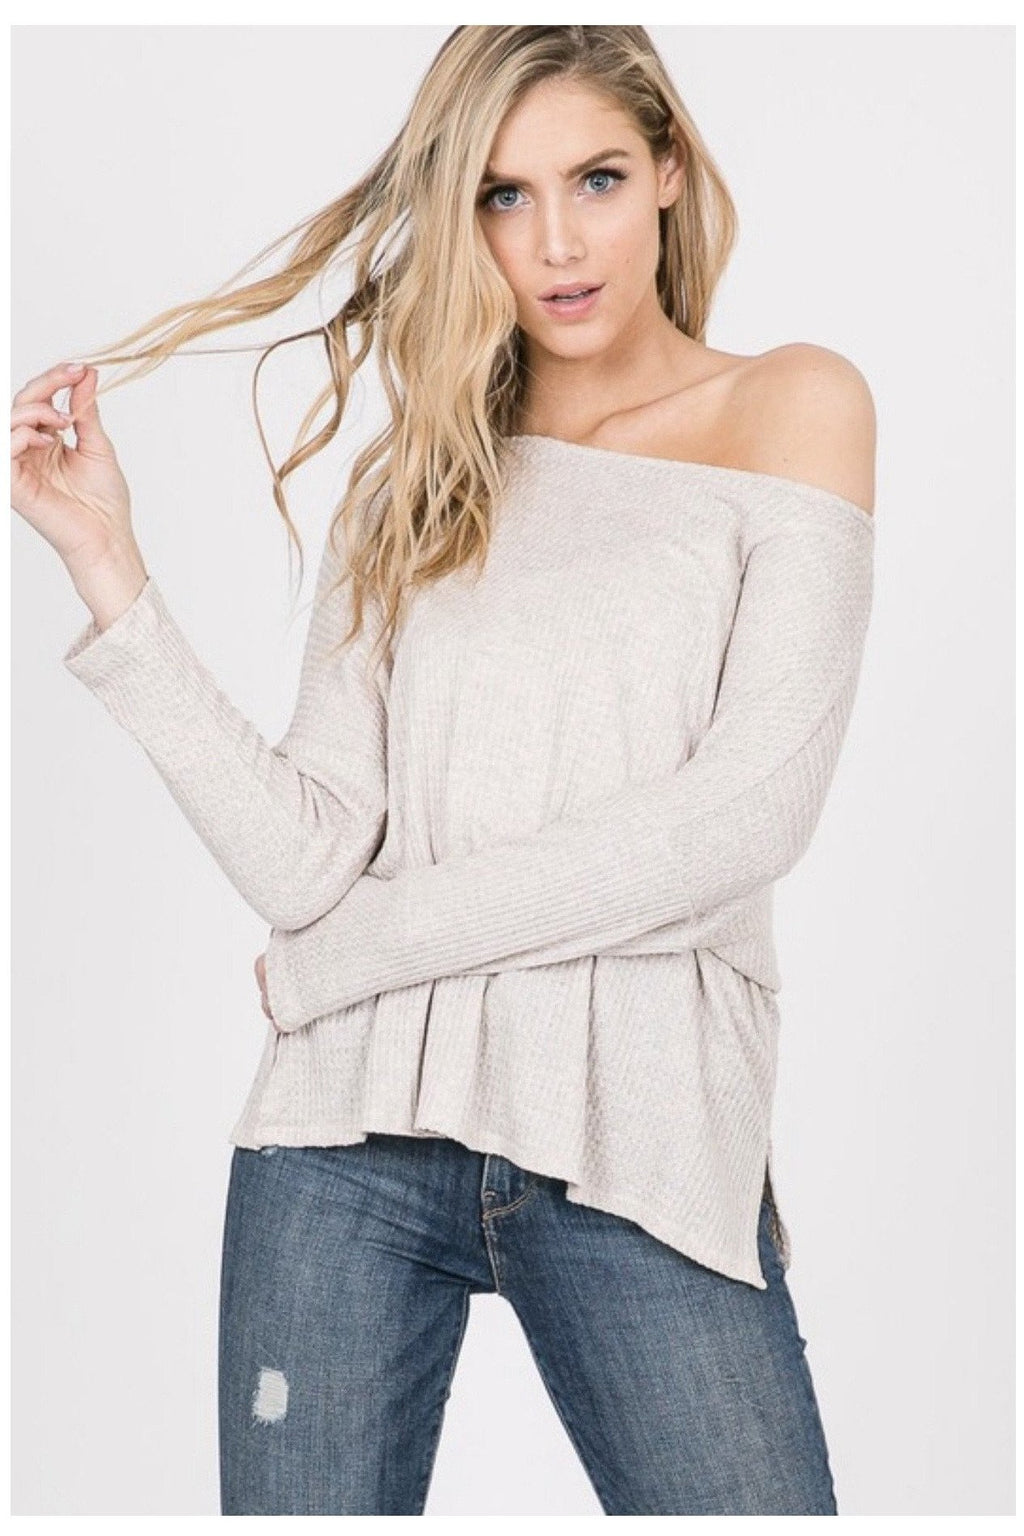 582934cfbaab8a James Long Sleeve Top